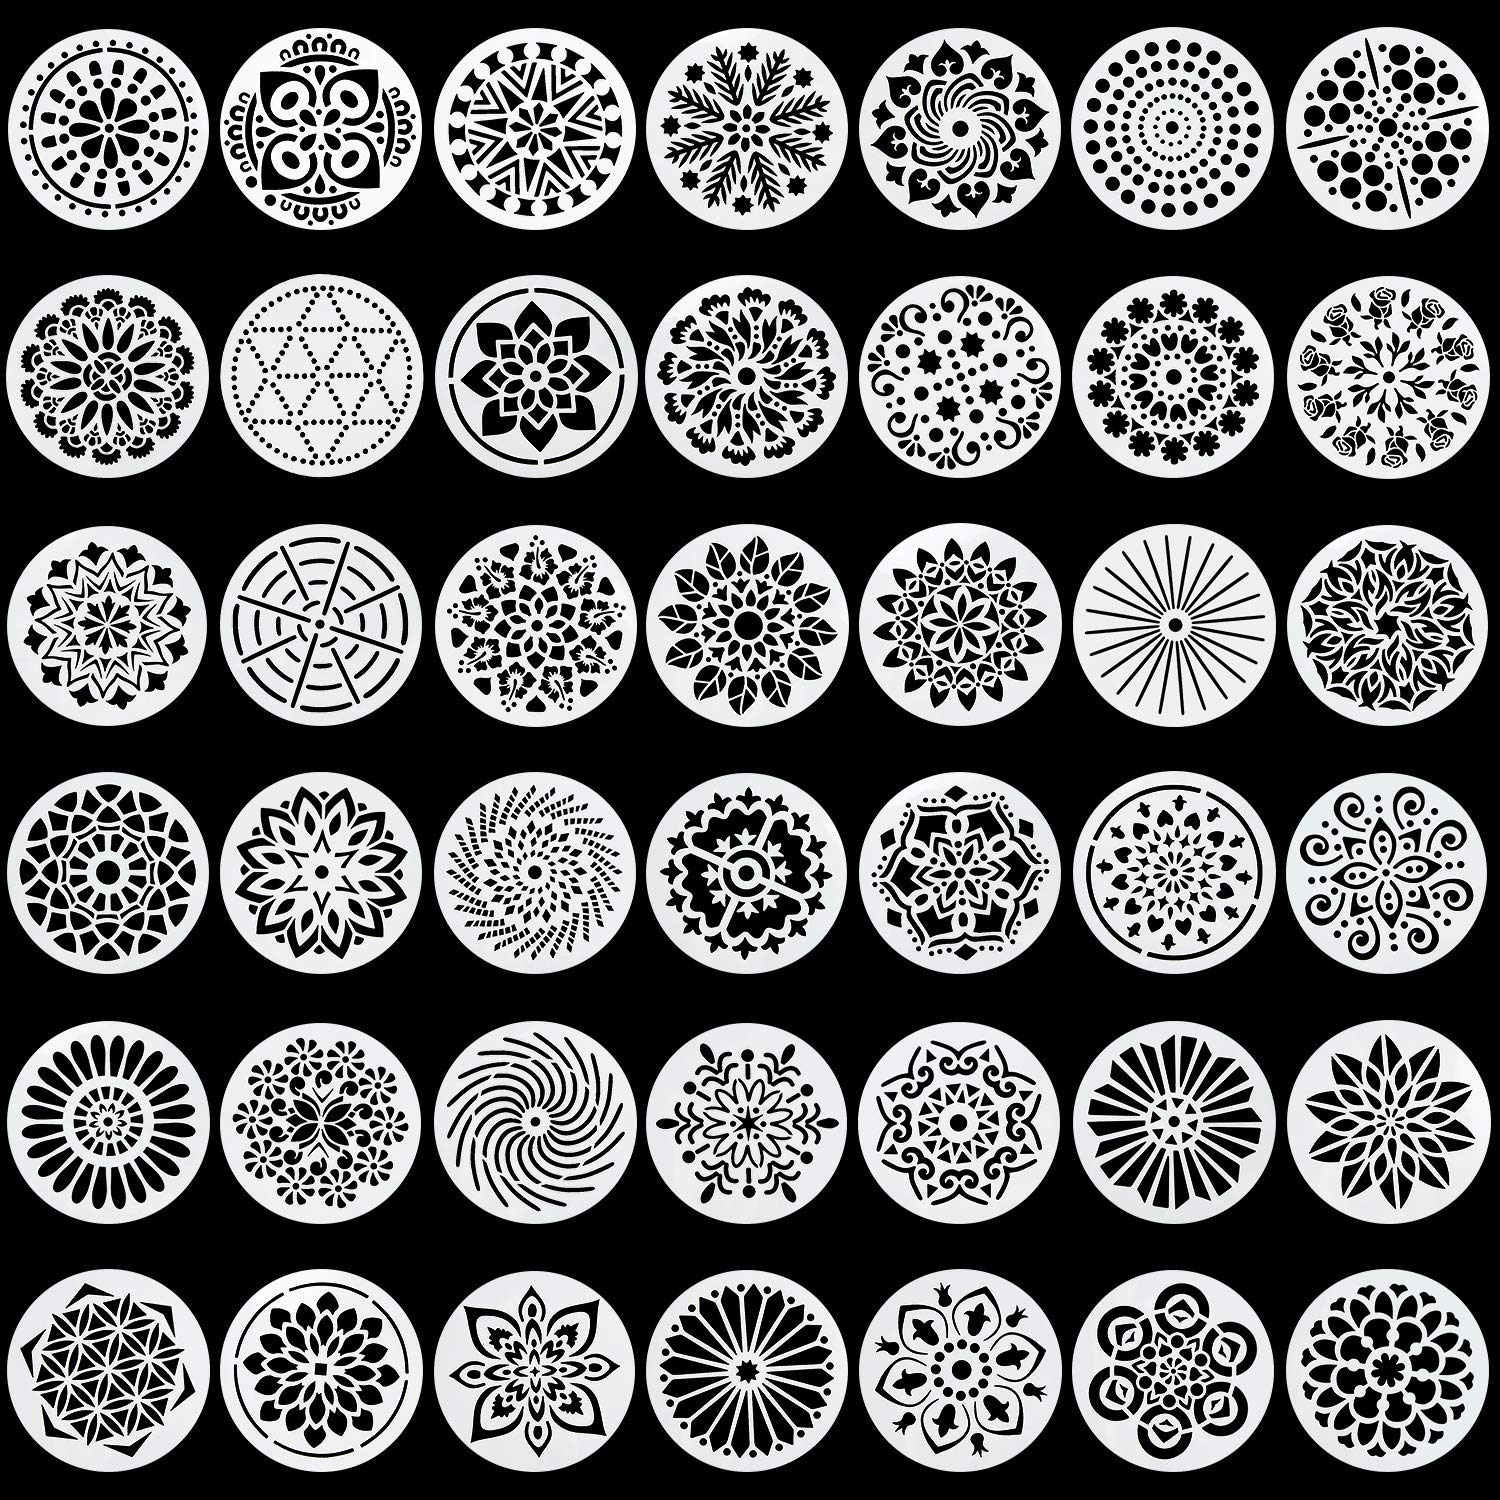 42 Pack Mandala Dot Painting Templates Round Stencils Perfect for DIY Rock Painting Art Projects (4 inch)